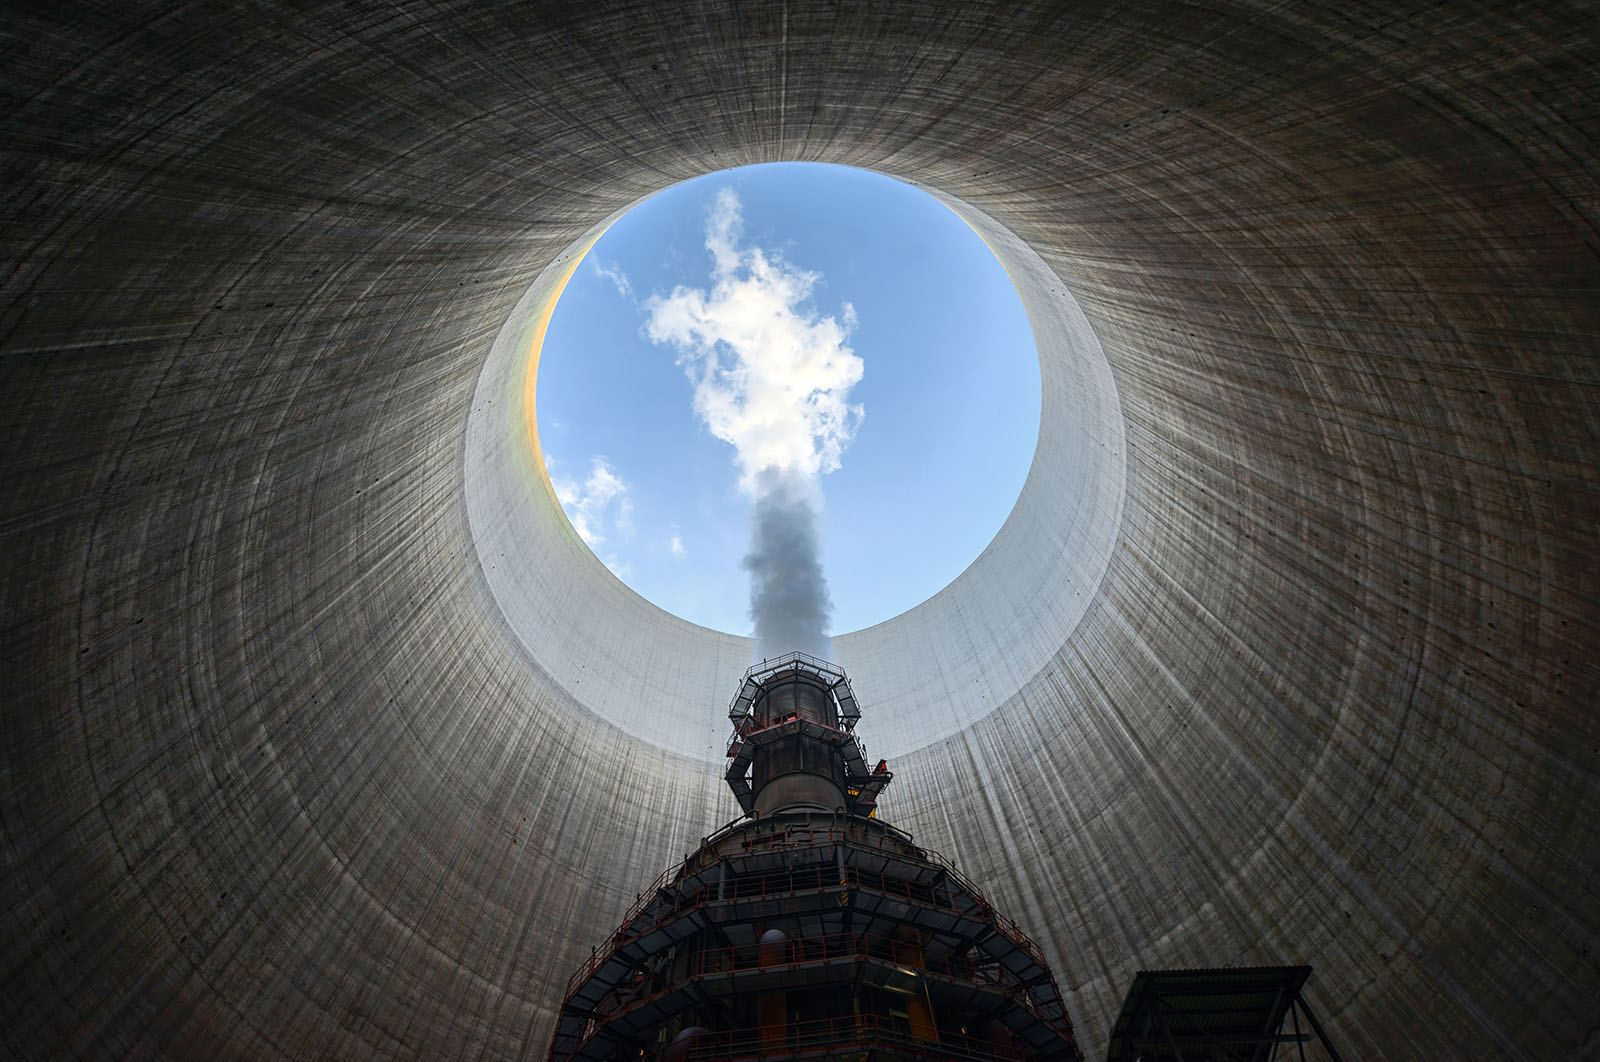 Inspection of a Nuclear Power Plant